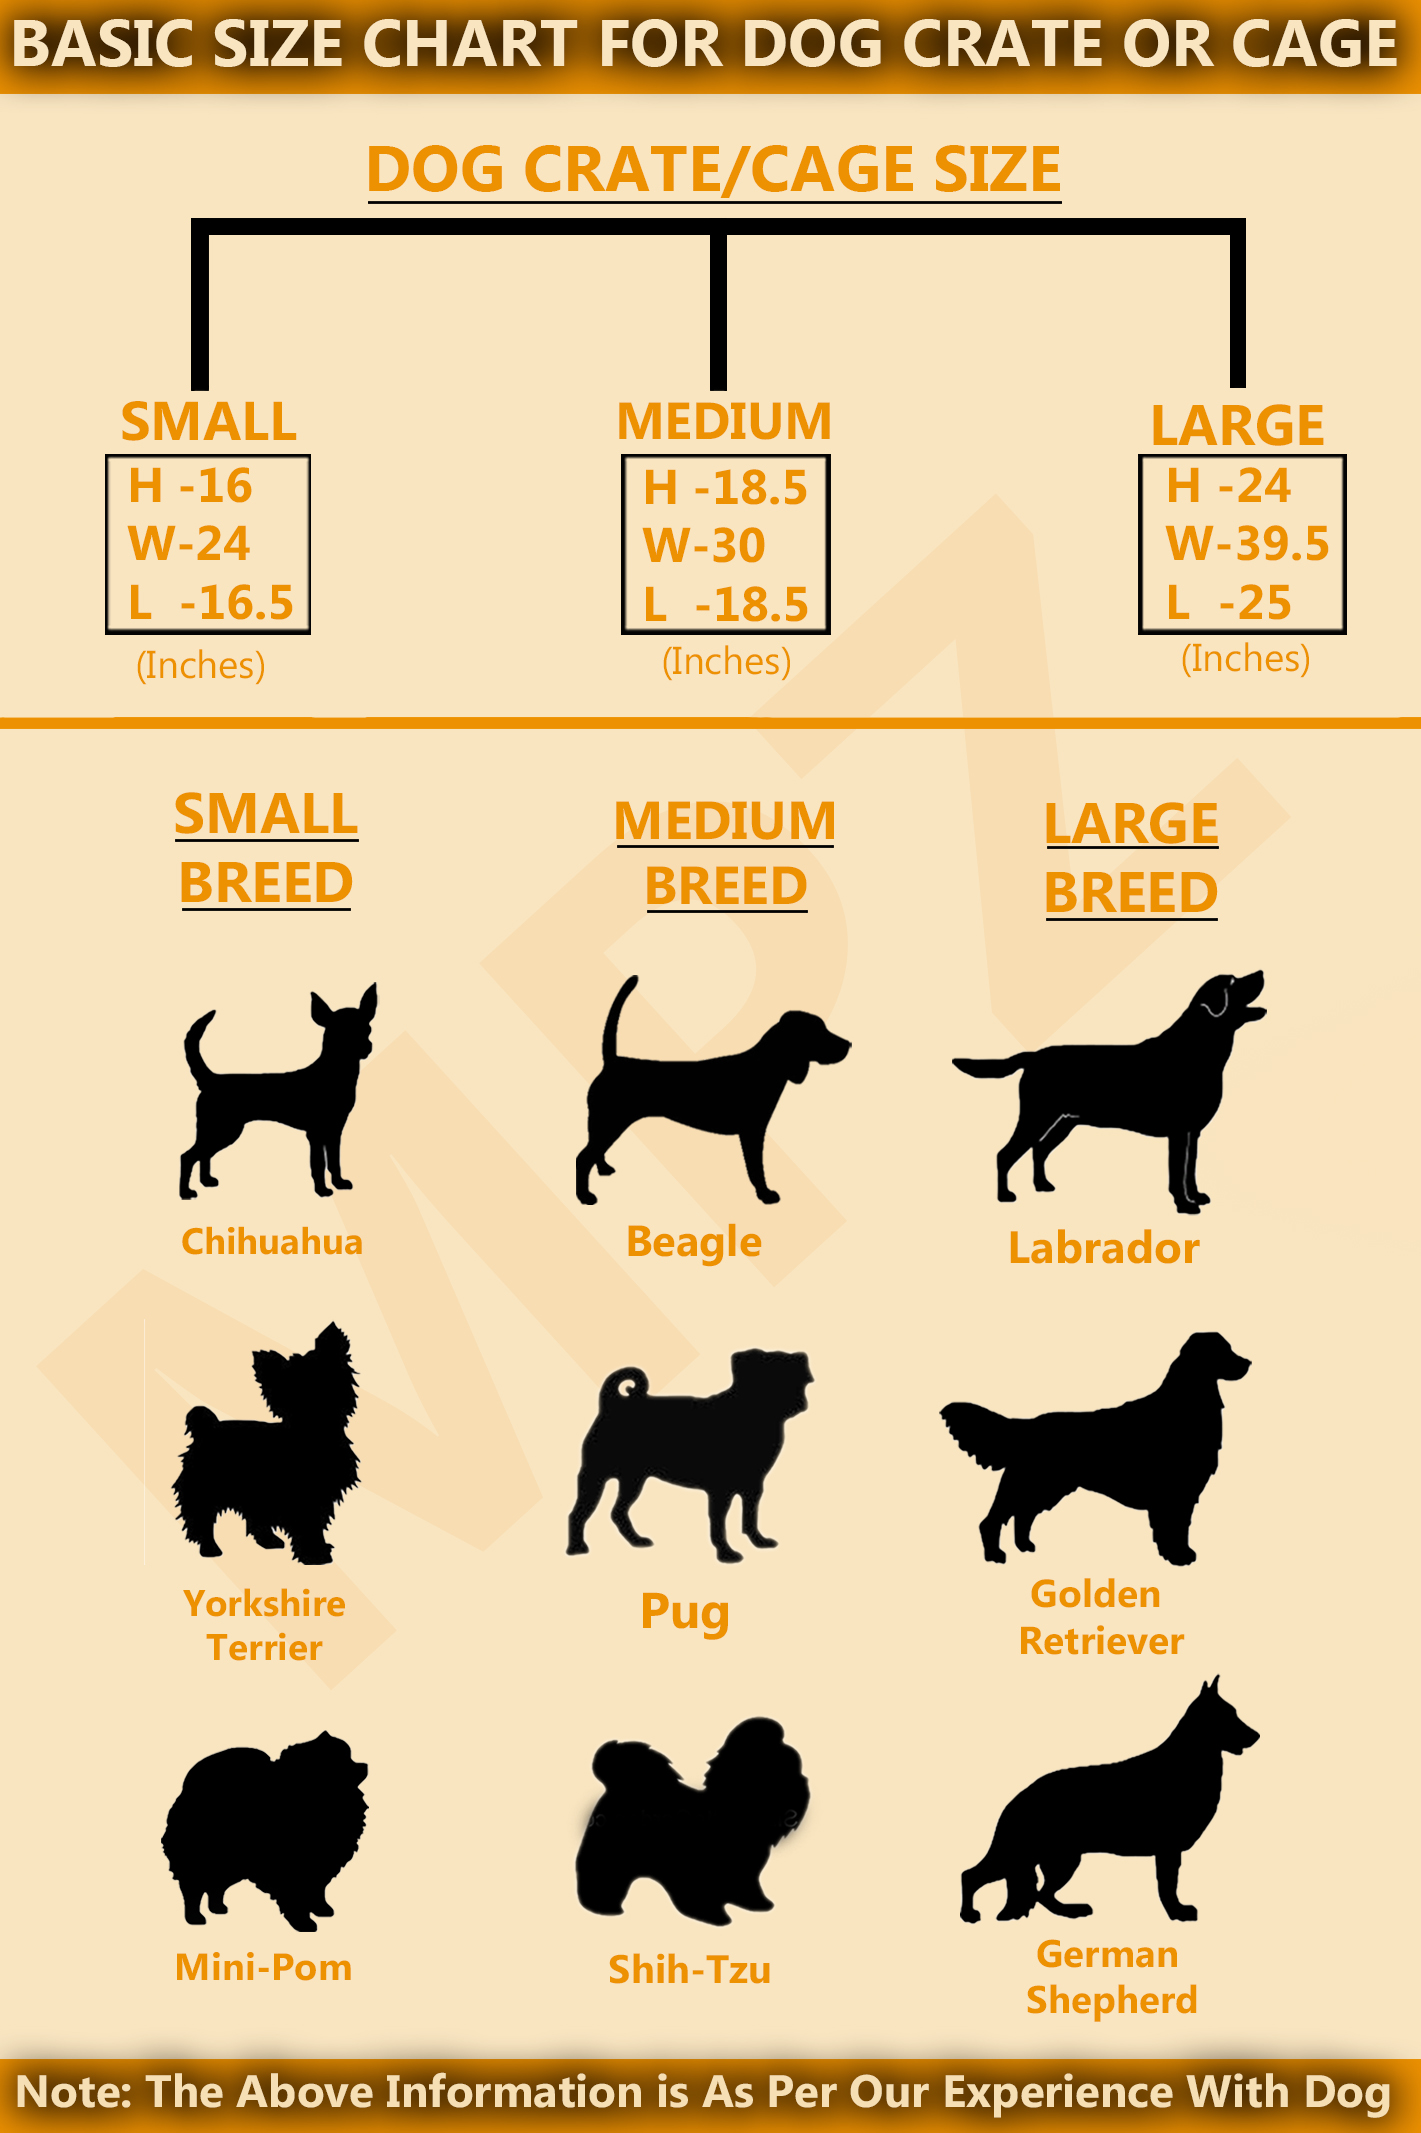 Basic size chart for dog crate or cage